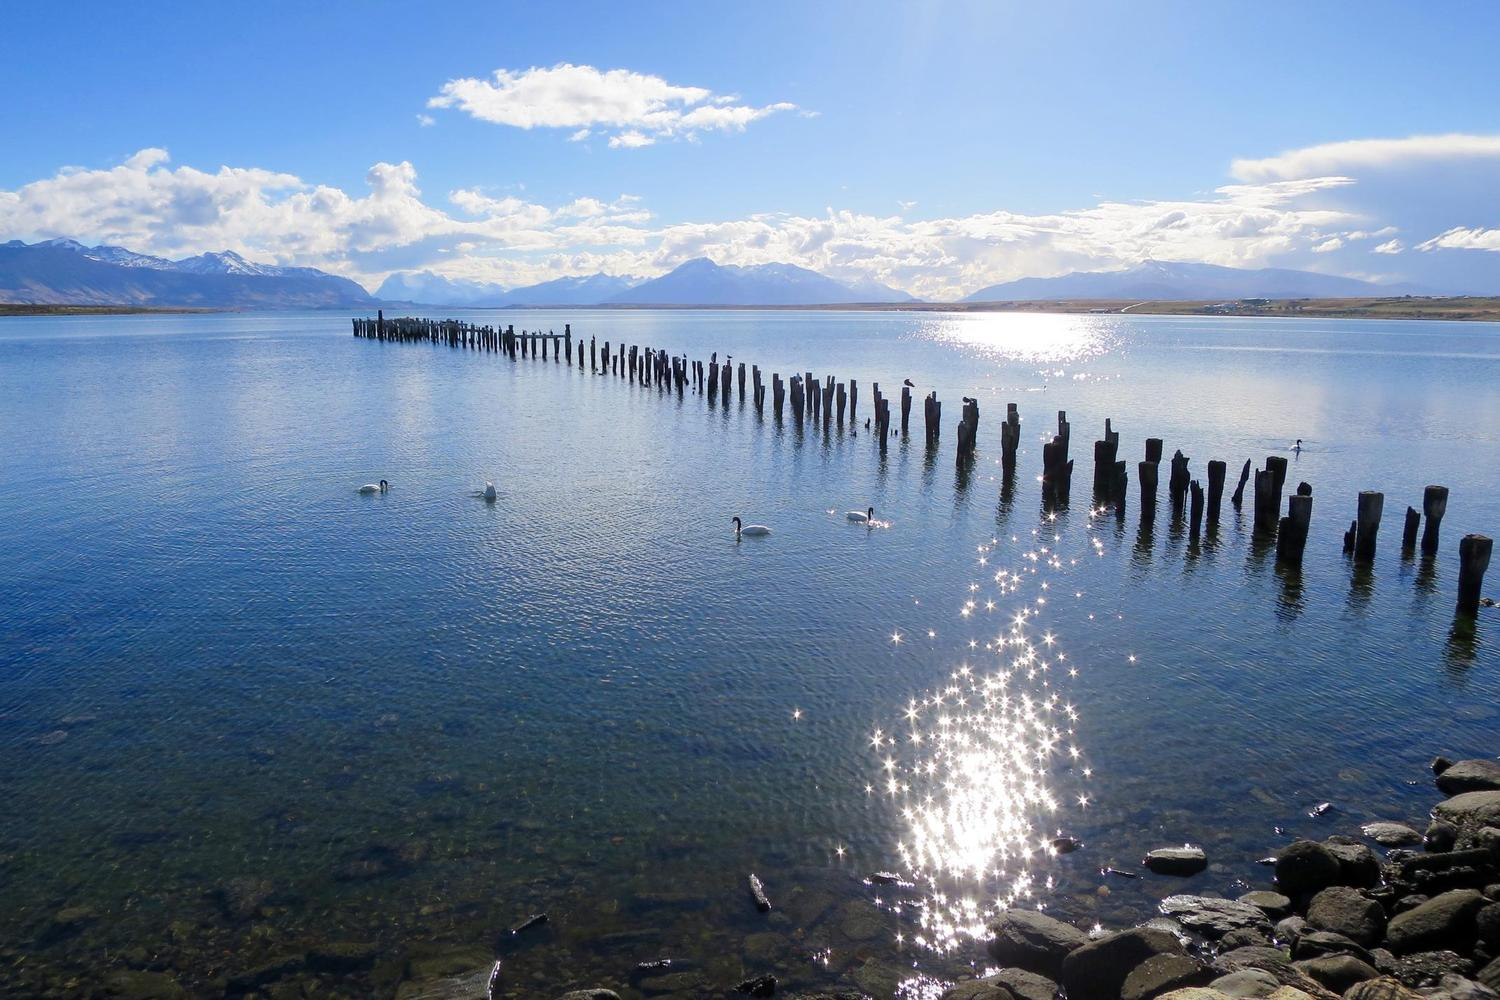 The old pier in Puerto Natales